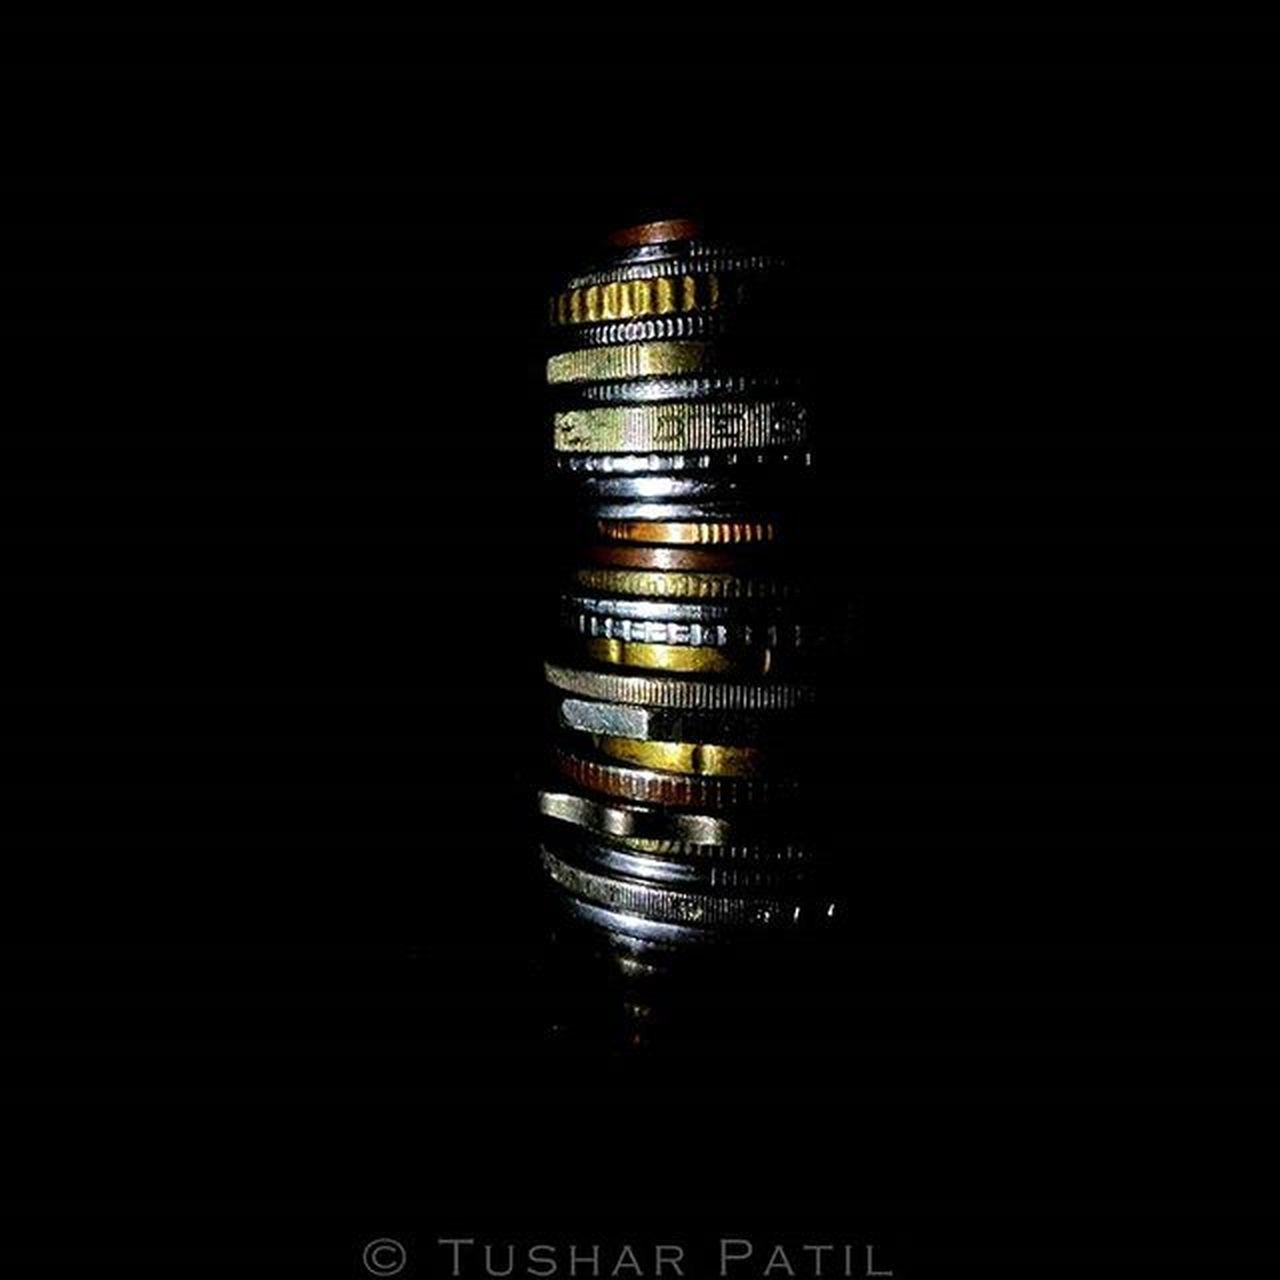 Stack of coins Coins Stack Dark Background Shiny Indian_photographers India_gram Ig_maharashtra Ig_india Ig_worldclub Asusglobal Asus Zenfone Zenfoneglobal Seewhatotherscantsee _soi Repostingindia Indianstories Instagram Instadaily Indianphotographers Indian_photography